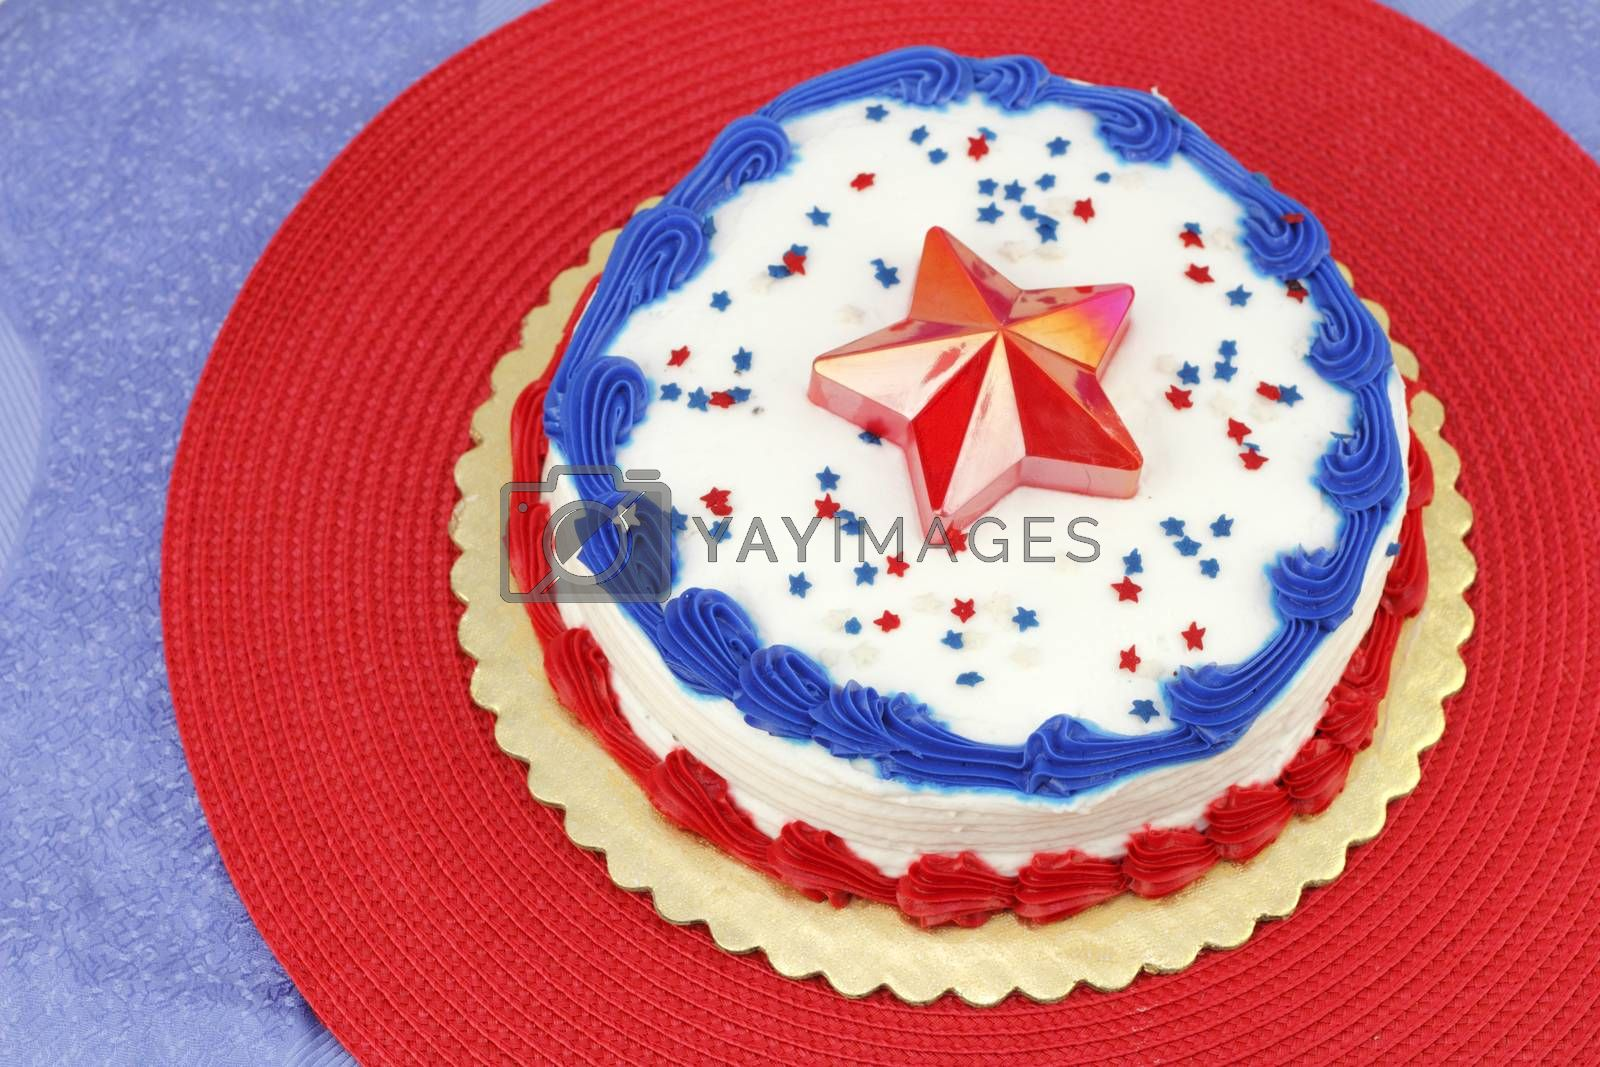 July 4th Decorated Cake by Serenethos